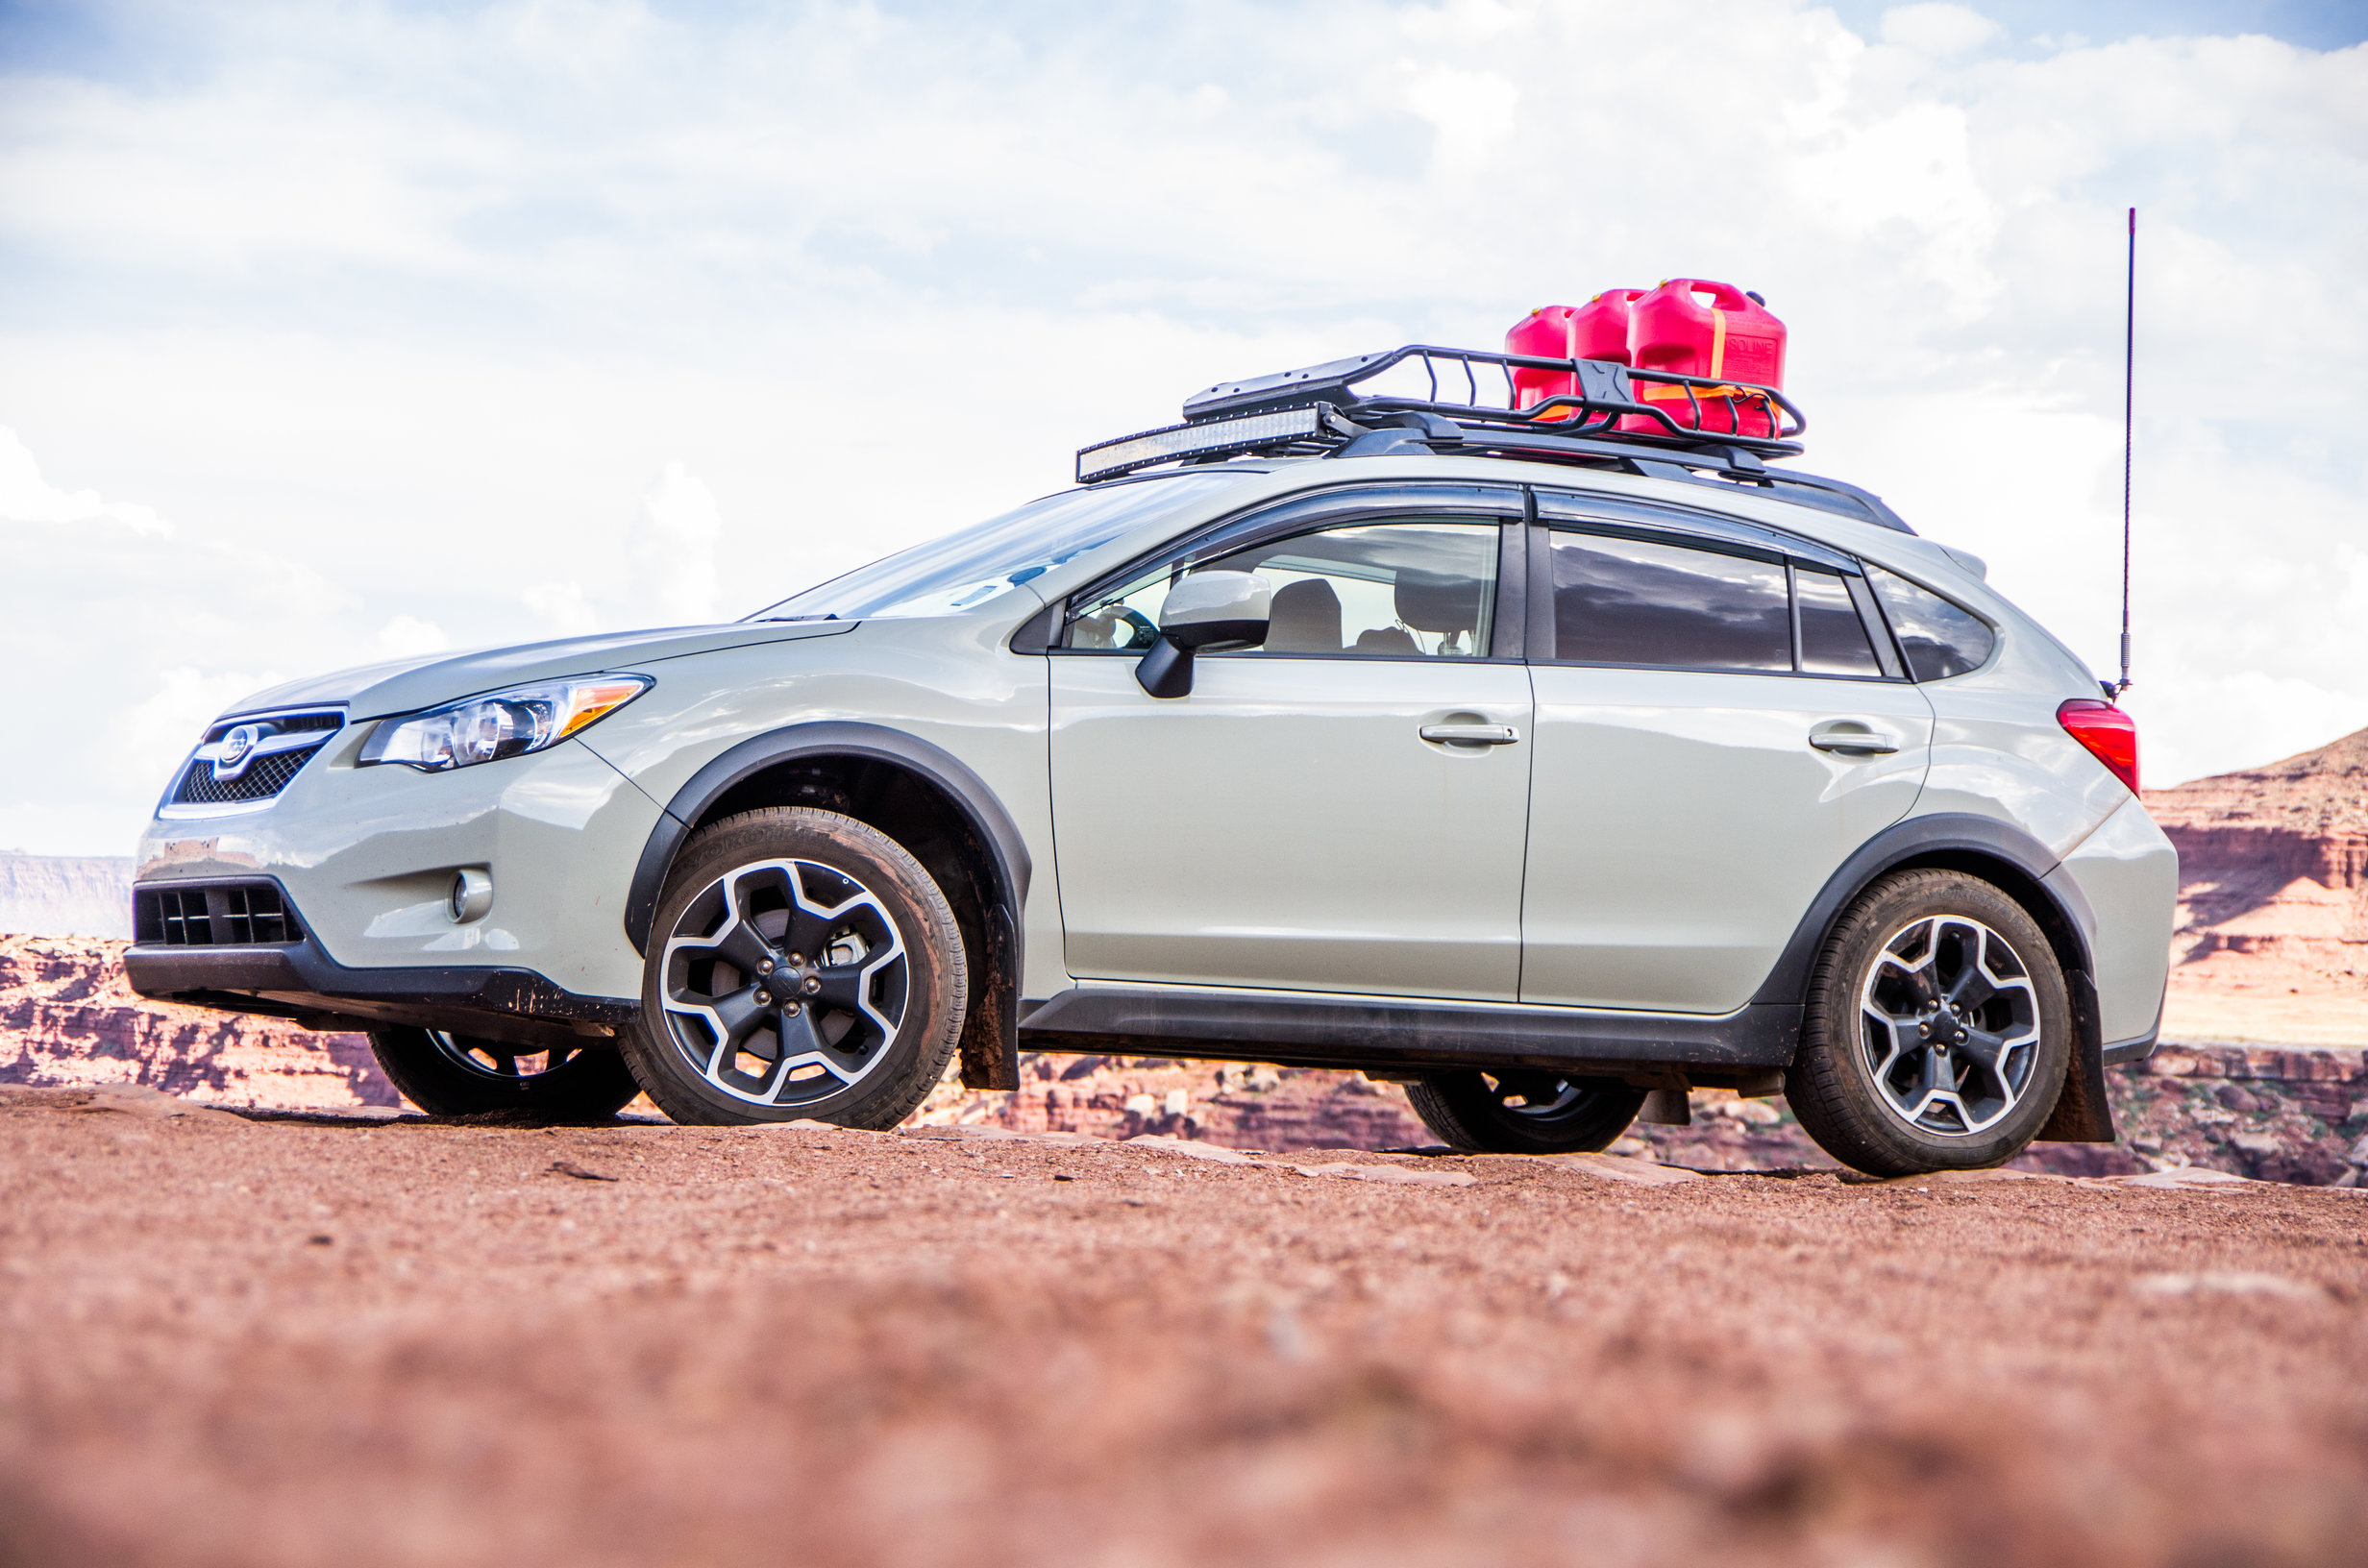 Subaru Crosstrek Roof Rack >> March 2016 XVOTM Voting